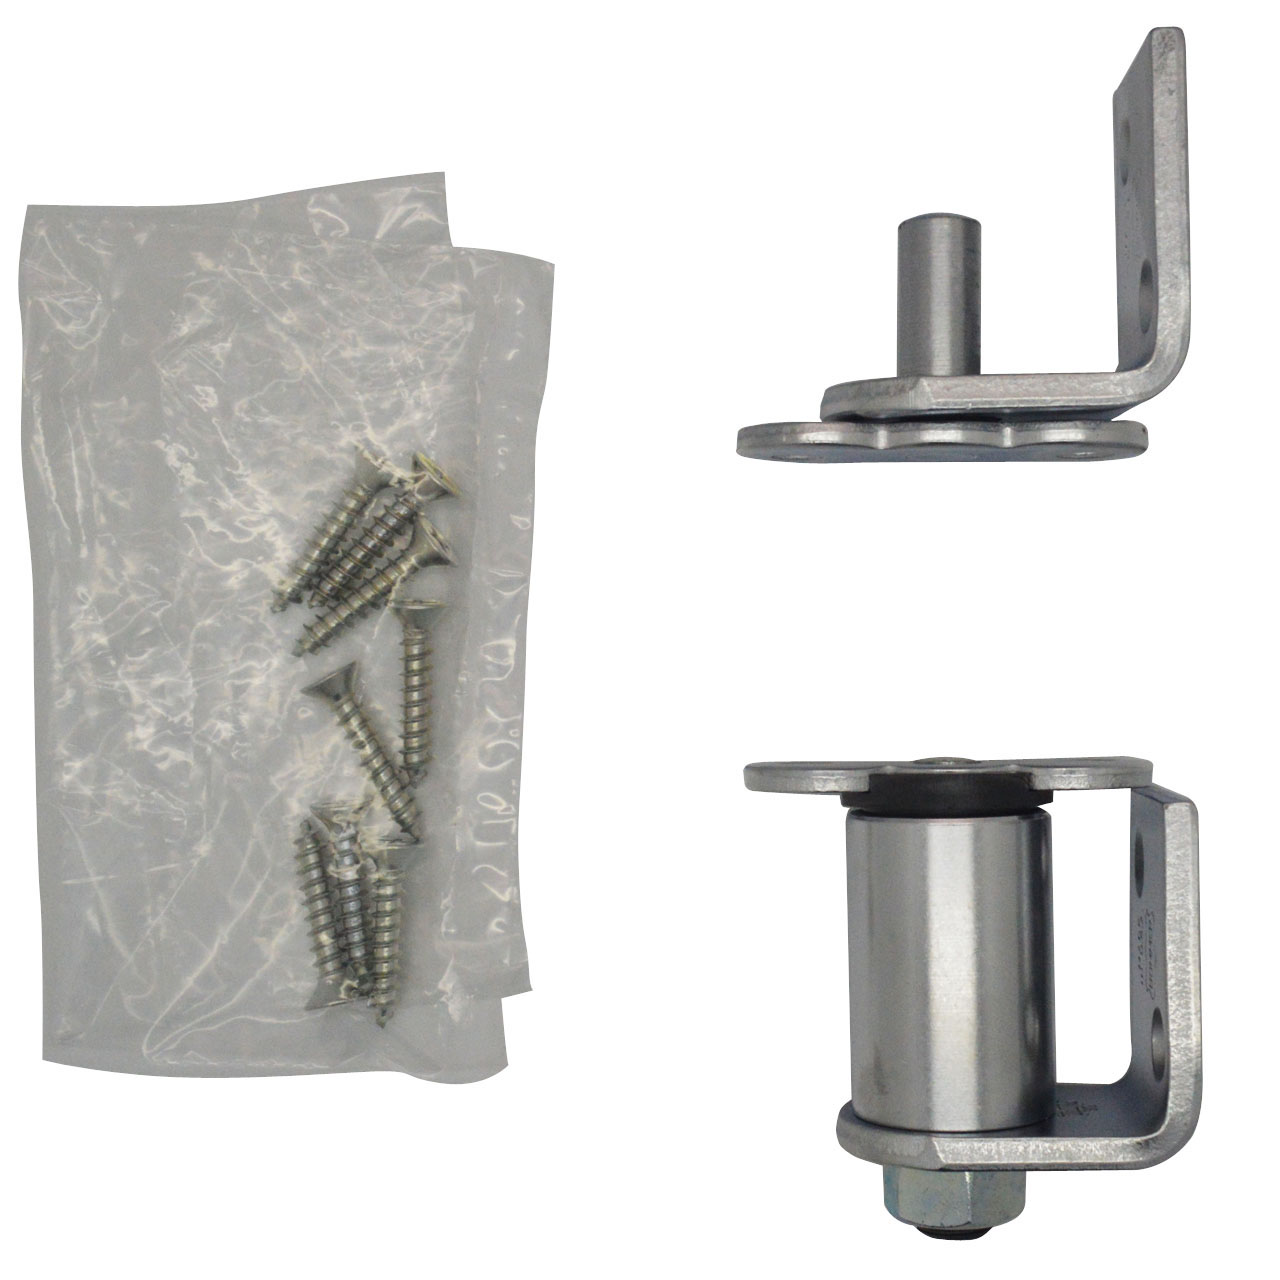 Heavyduty kitchen swinging door hinges